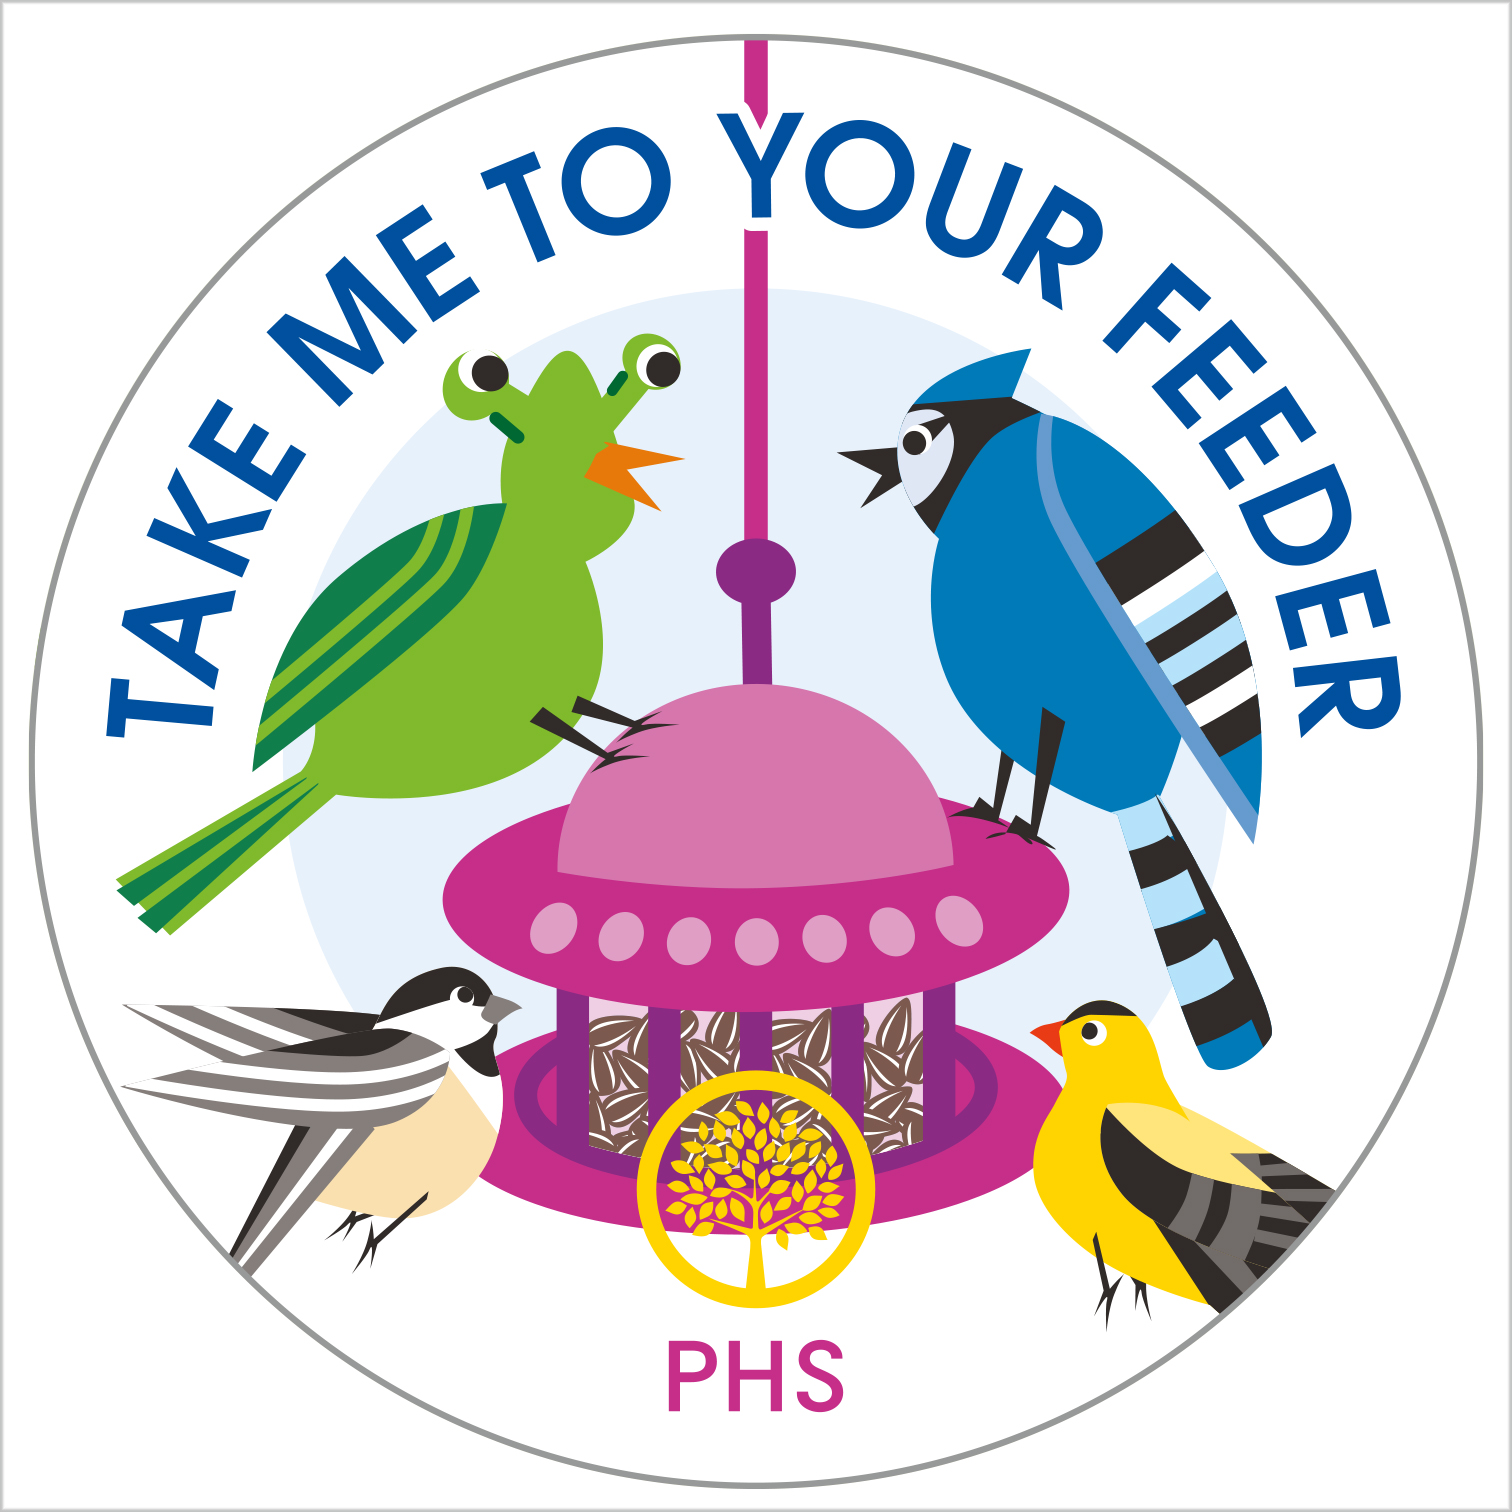 Design and illustrations for collectible buttons that were sold to raise funds for the Pennsylvania Horticultural Society during the 2020 PHS Philadelphia Flower Show.